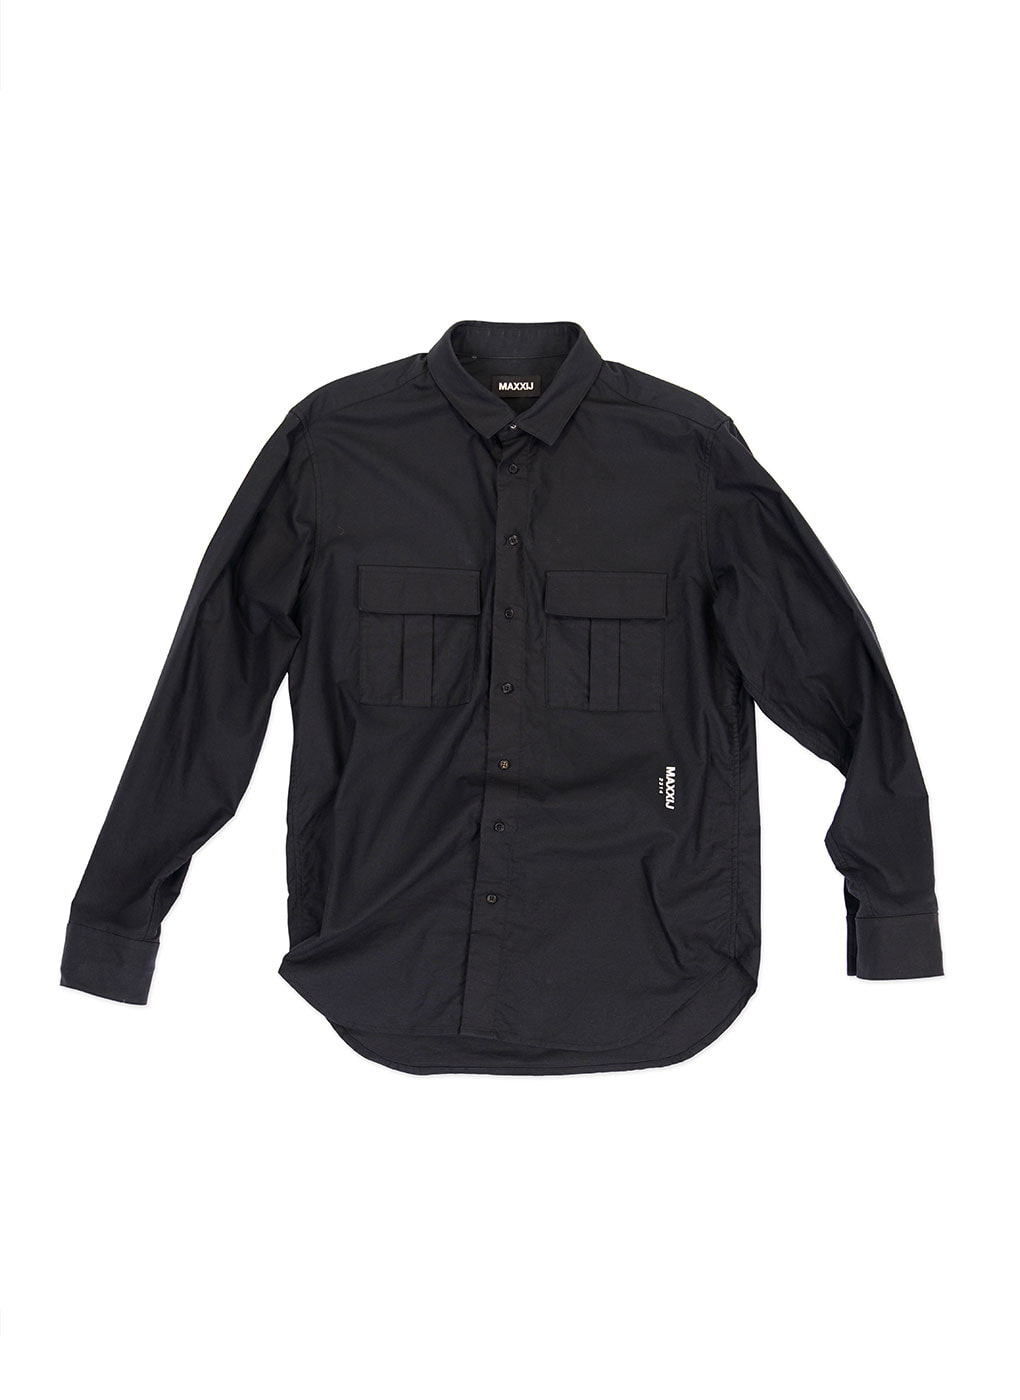 Black Military Button Down Oxford Shirt